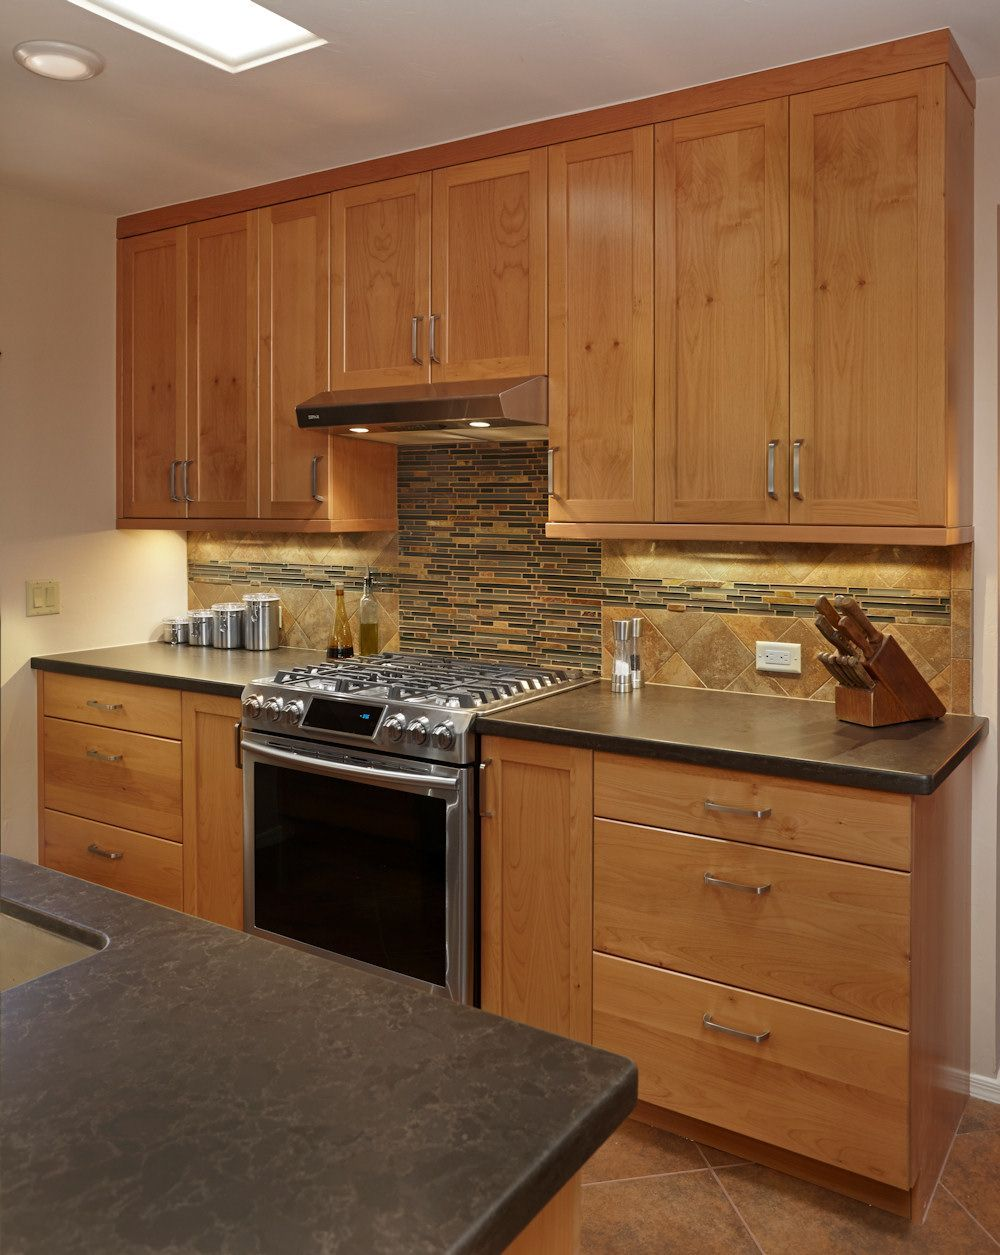 Shaker craft classic natural cherry cabinetry with black quartz